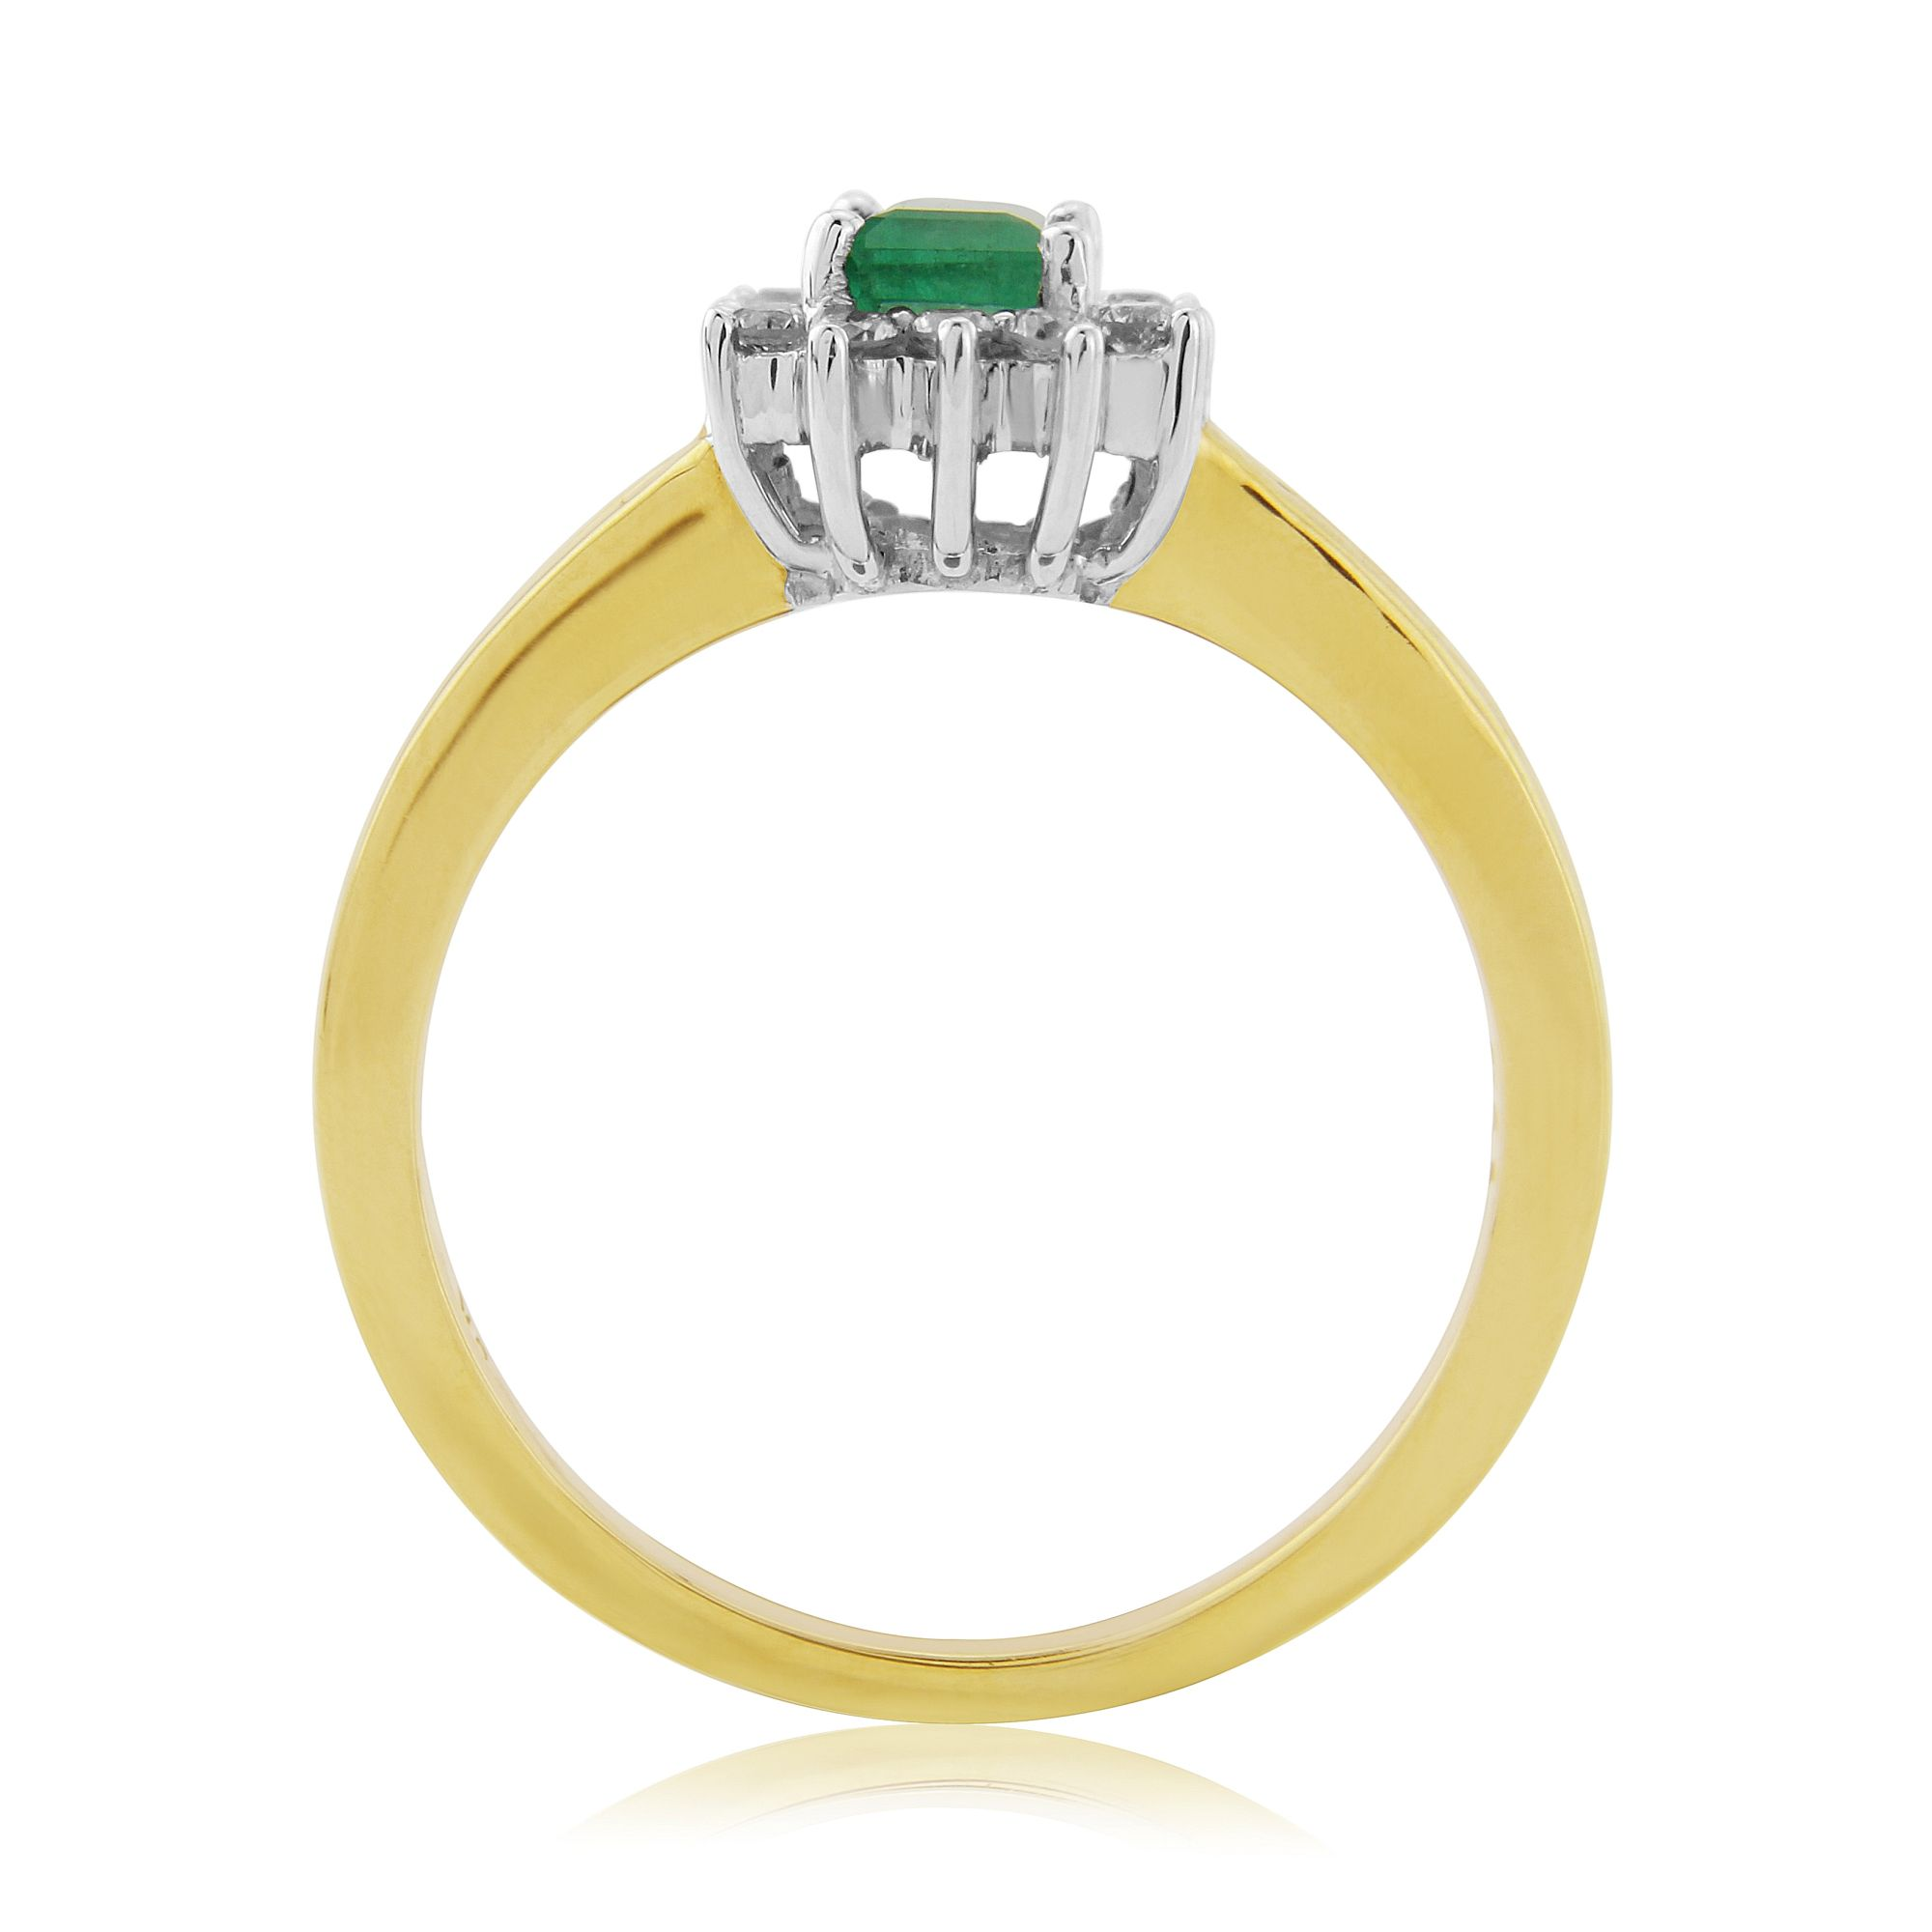 emerald and 9 carat yellow gold half eternity ring